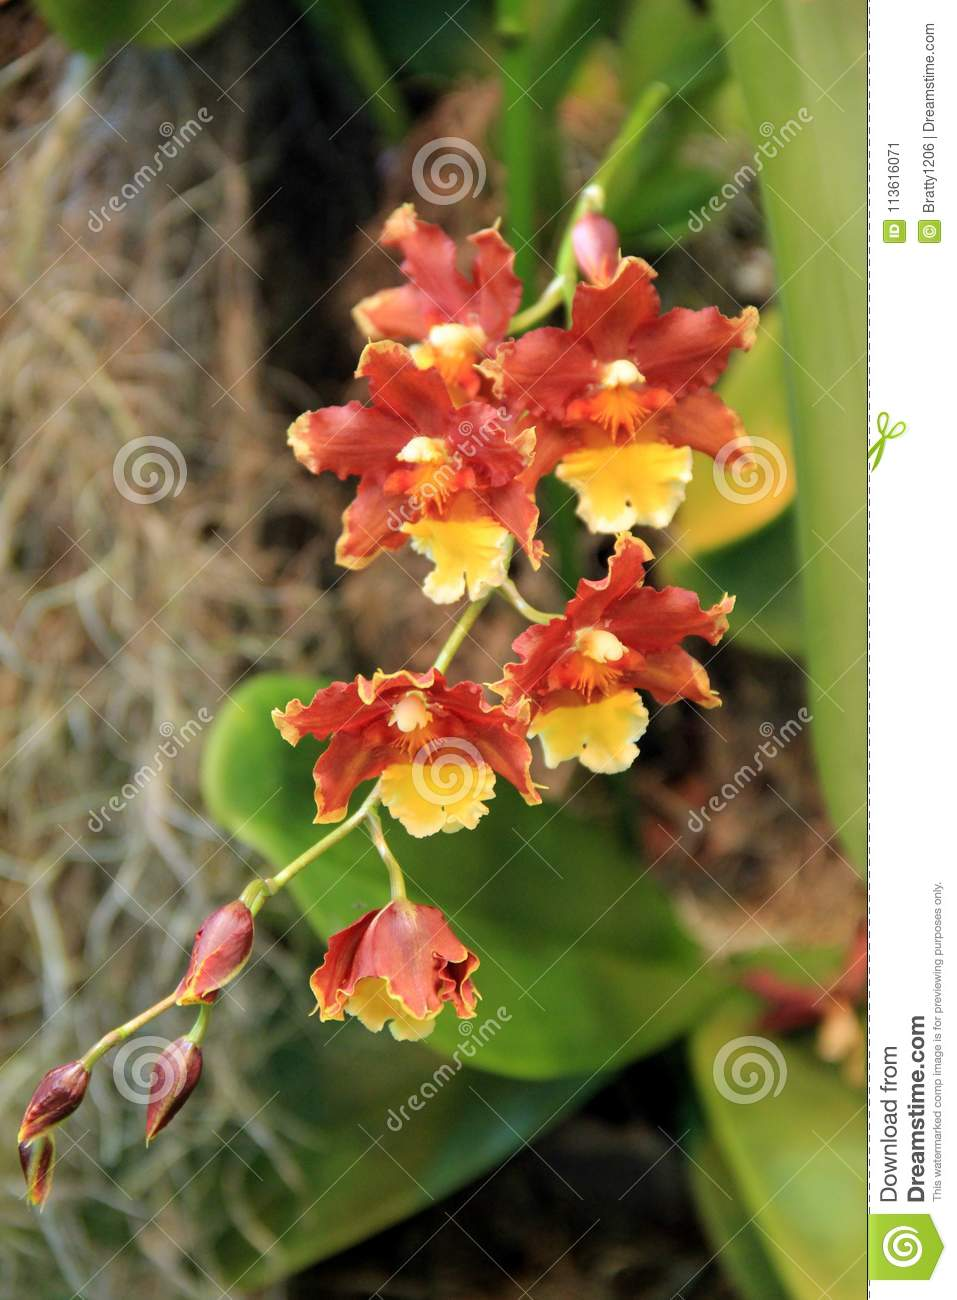 Beautiful exotic flowers hanging in tropical garden stock image download beautiful exotic flowers hanging in tropical garden stock image image of colorful species izmirmasajfo